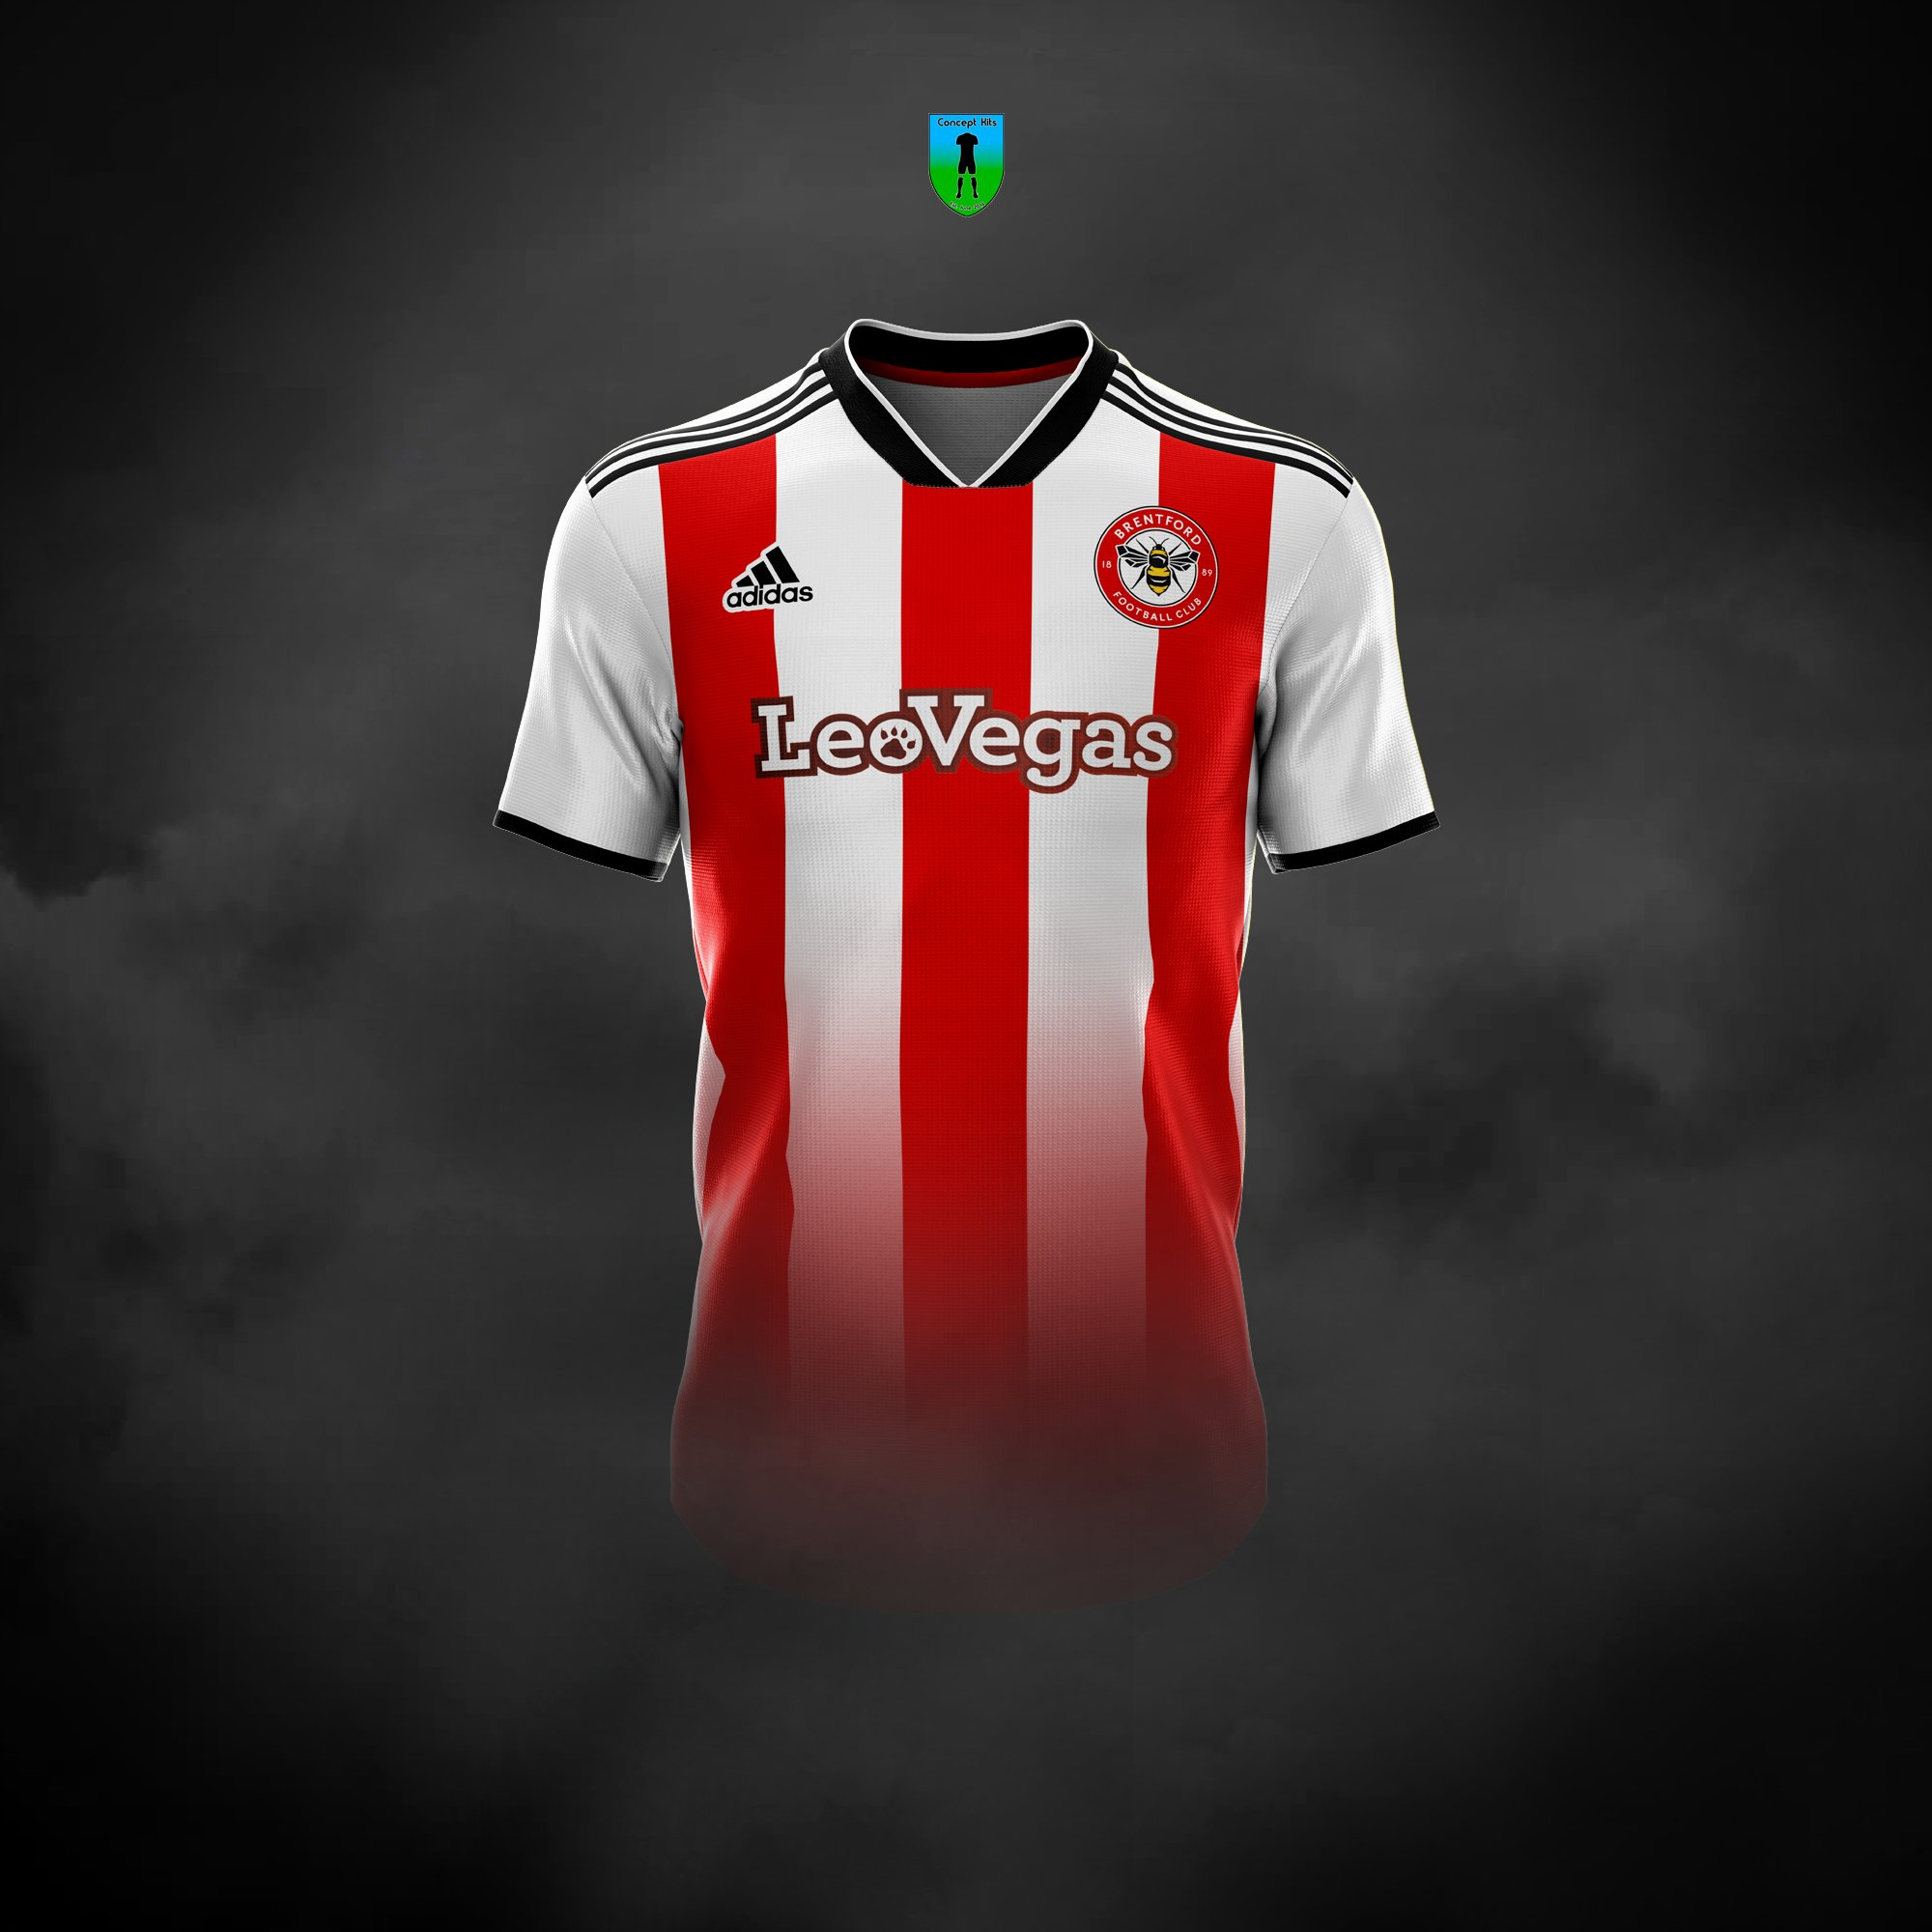 766c20d81 Turning our attention to Brentford FC s away concept kit